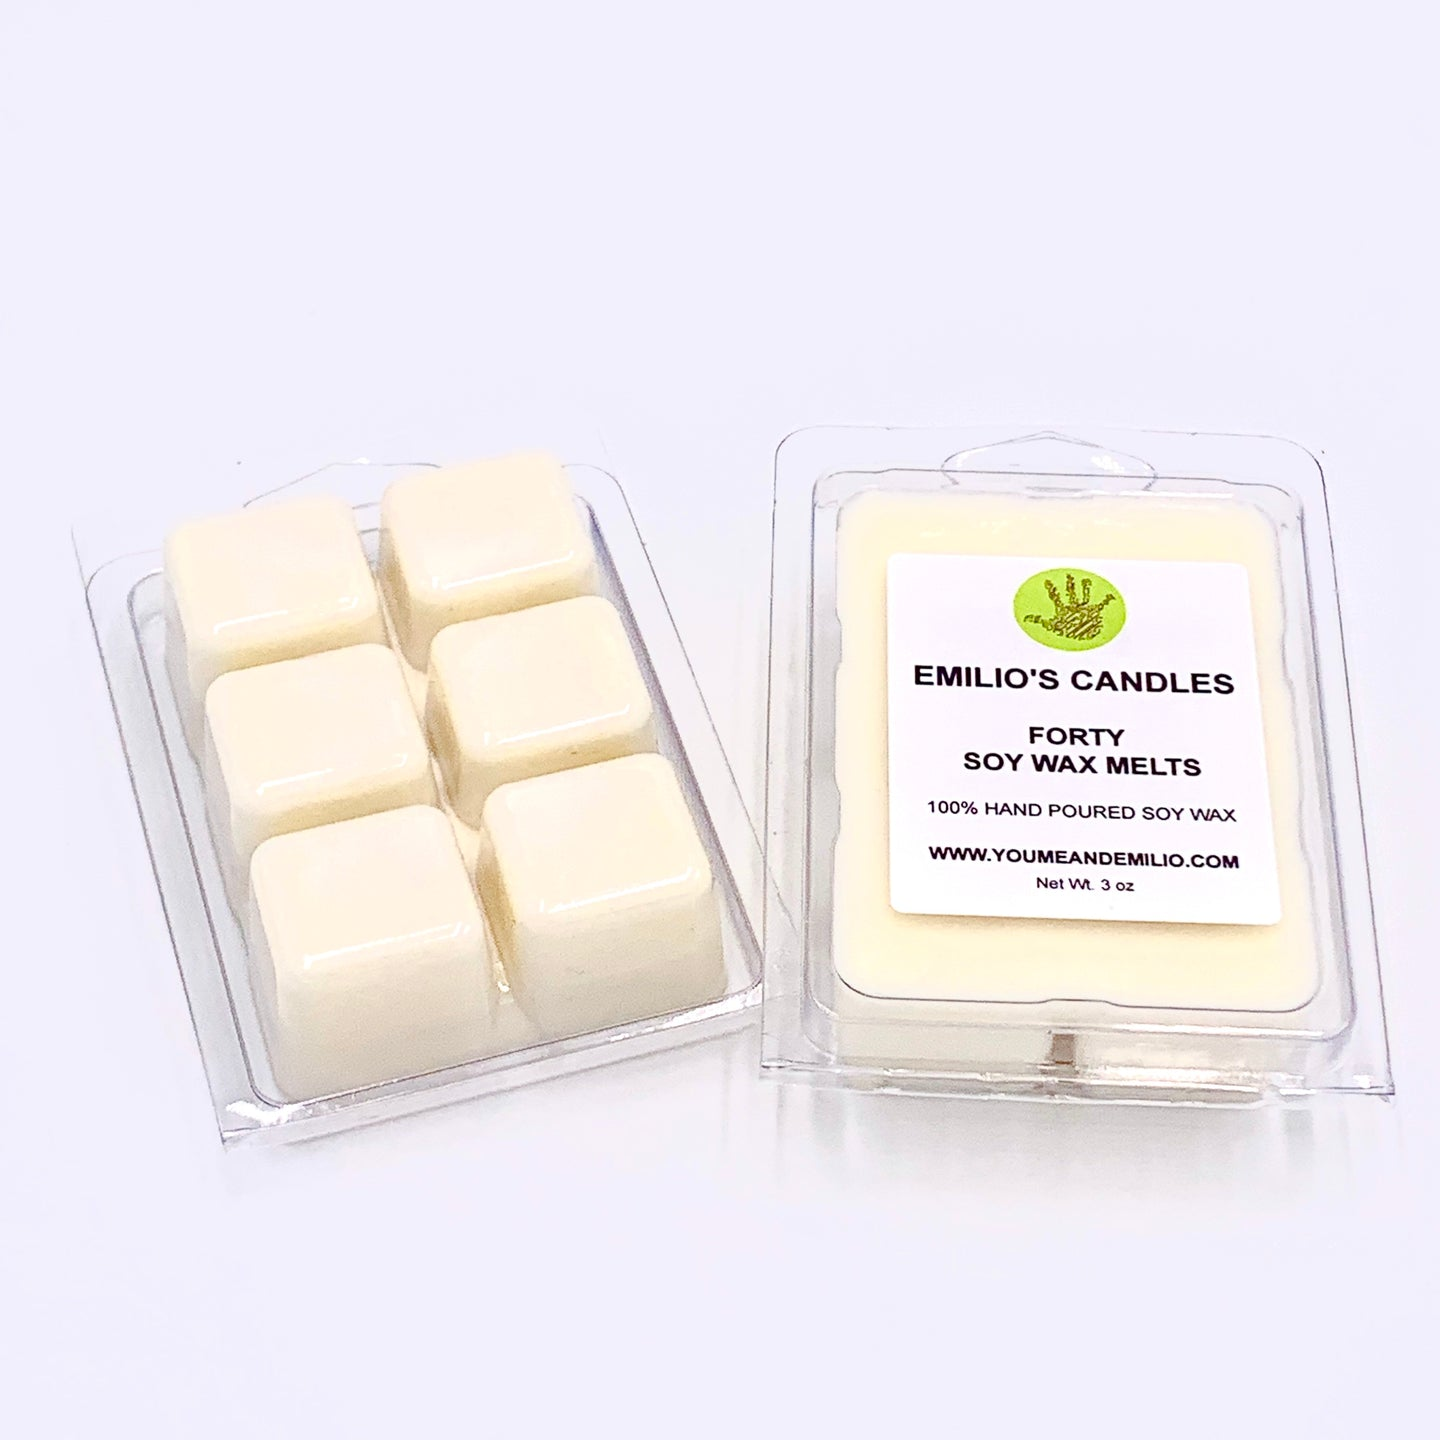 Forty Soy Wax Melts